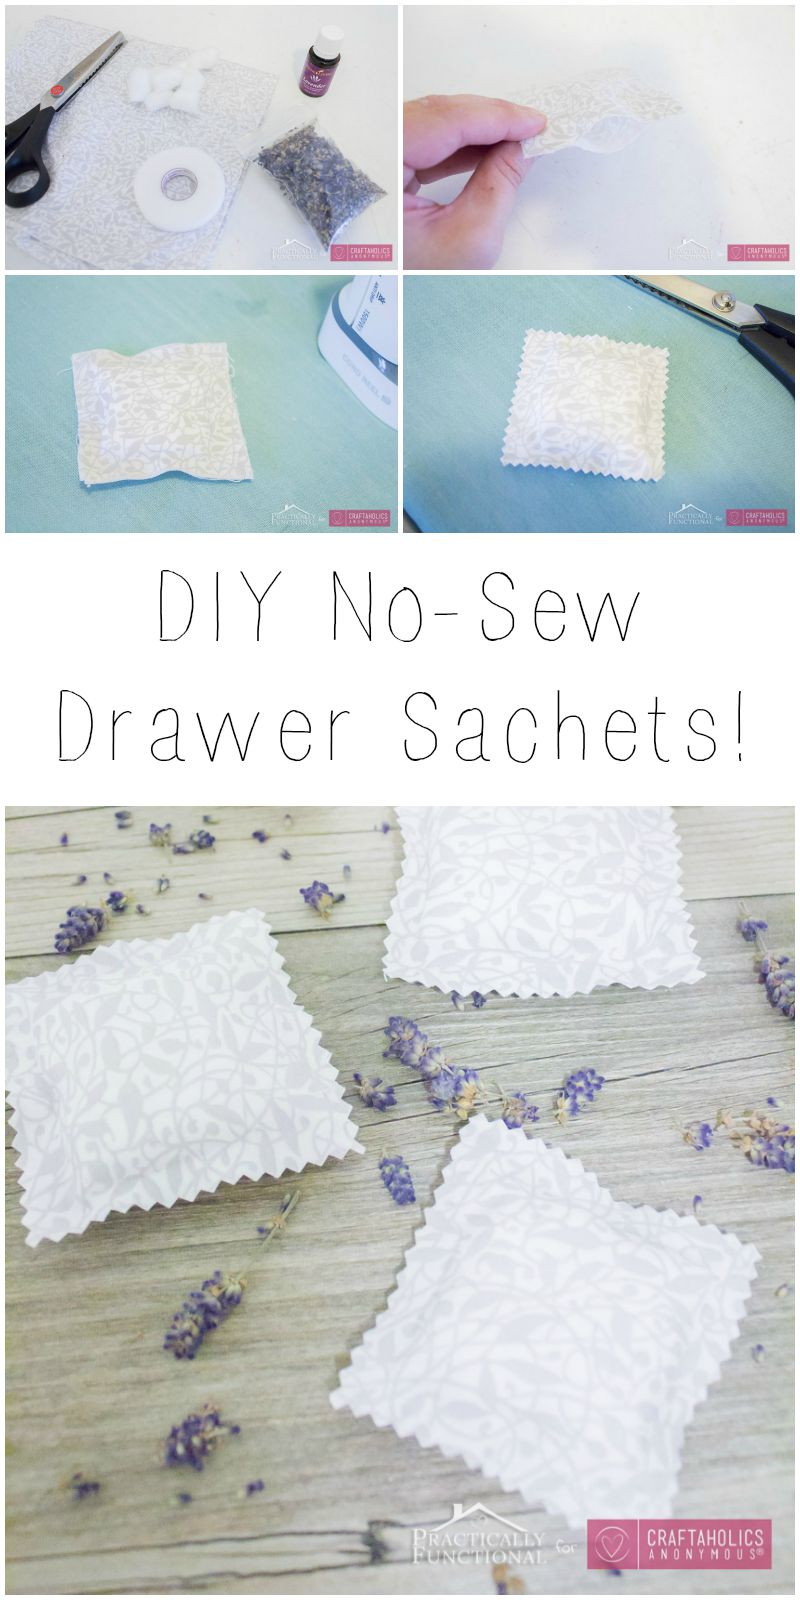 How to make DIY Drawer Sachets